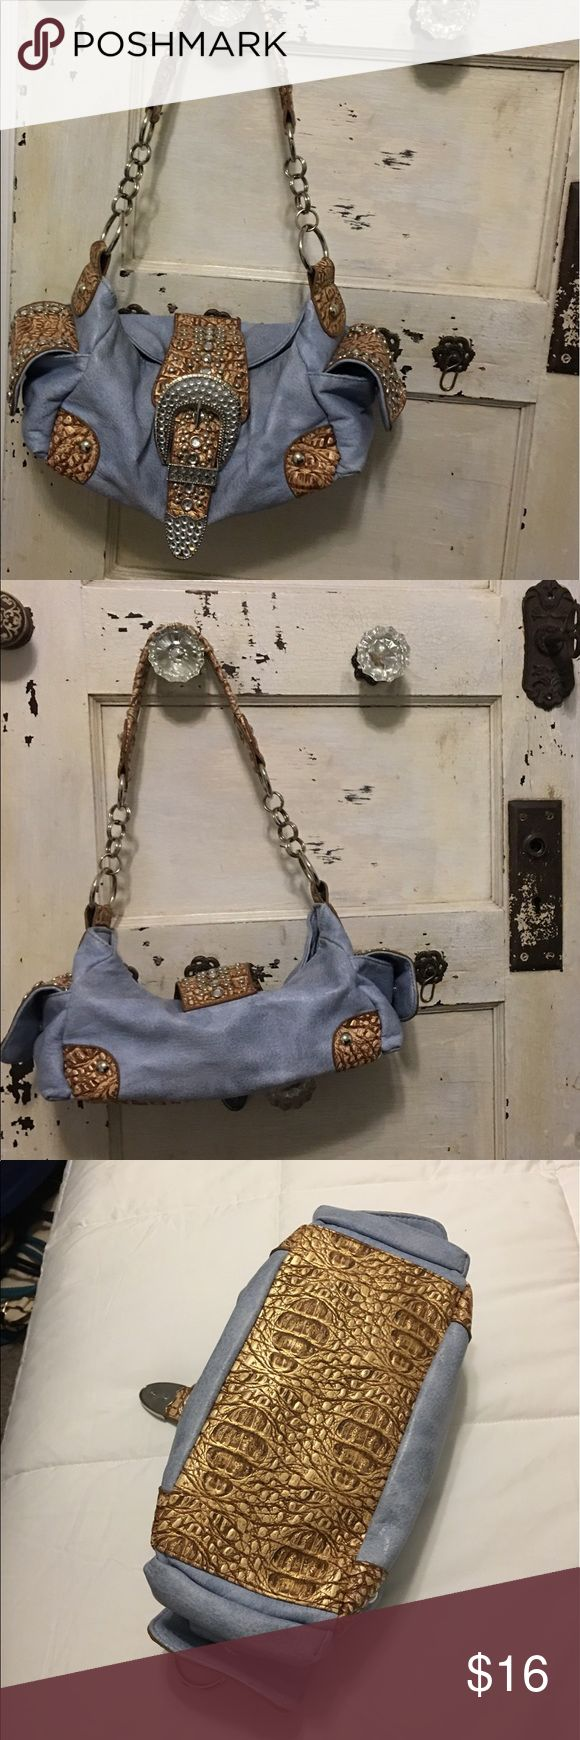 Adorable faux blue suede buckle studded purse Adorable faux blue suede purse with Rhinestone buckle and 2 studded side pockets. Excellent preowned condition💝💎 Bags Shoulder Bags